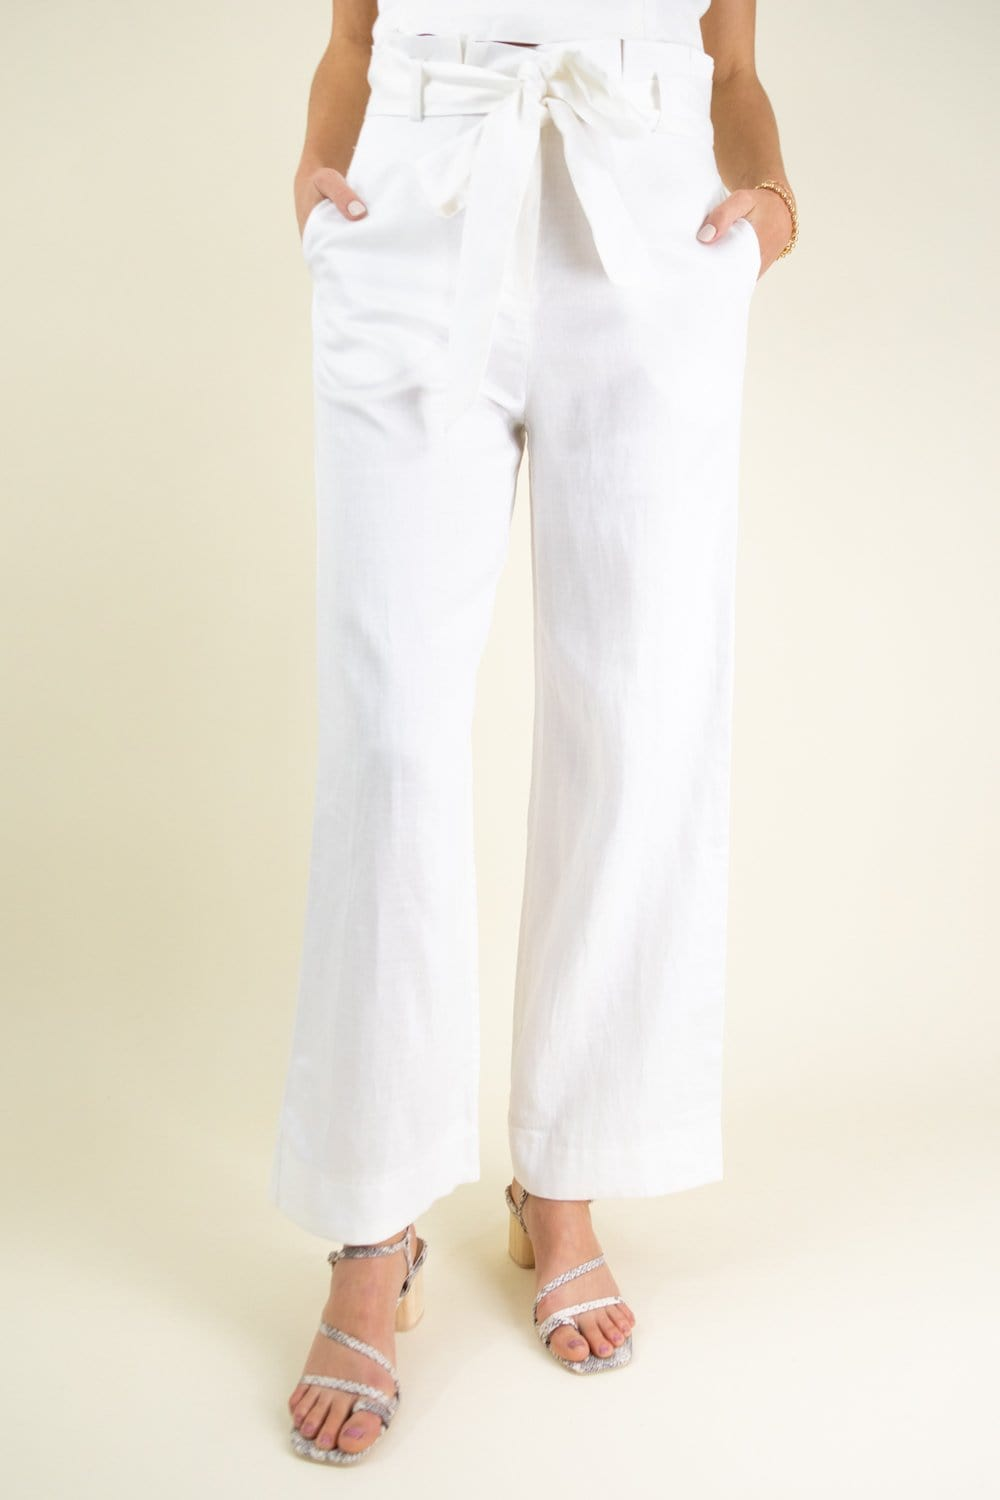 Lucy Paris Grace Paperbag Pant | Wild Dove Boutique